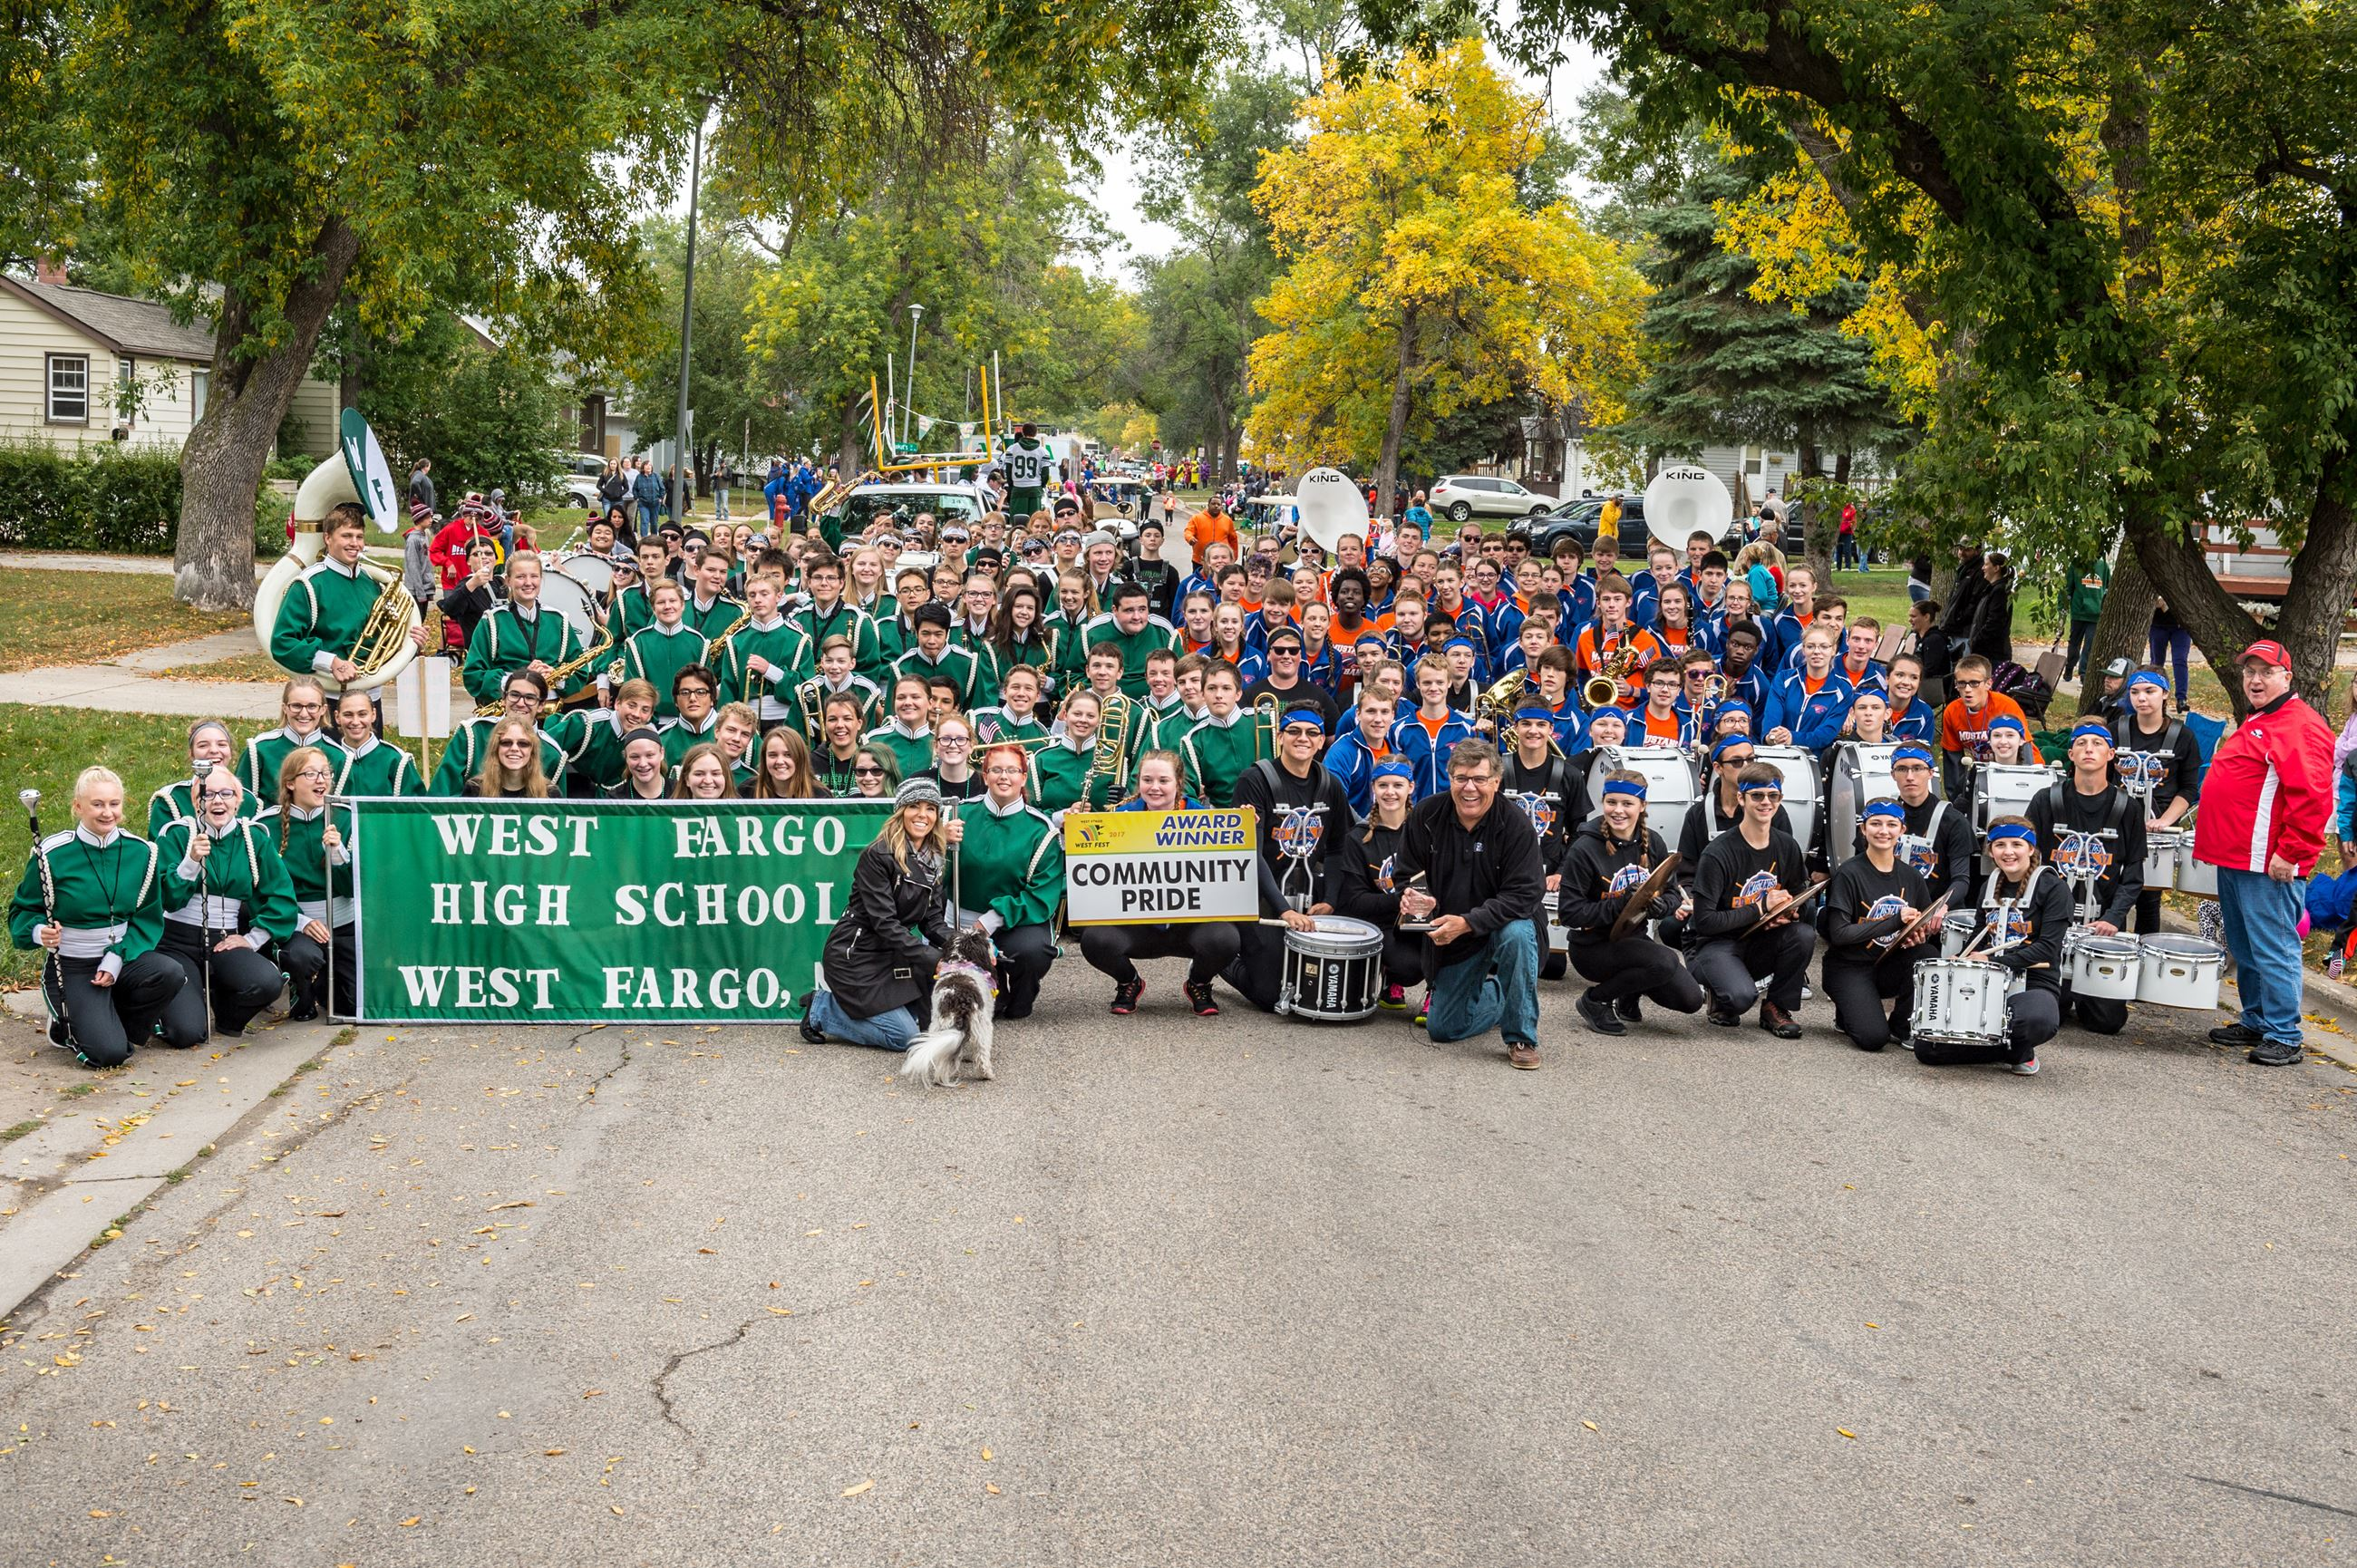 2017 Community Pride - Sheyenne High School Marching Band and West Fargo High School Marching Band